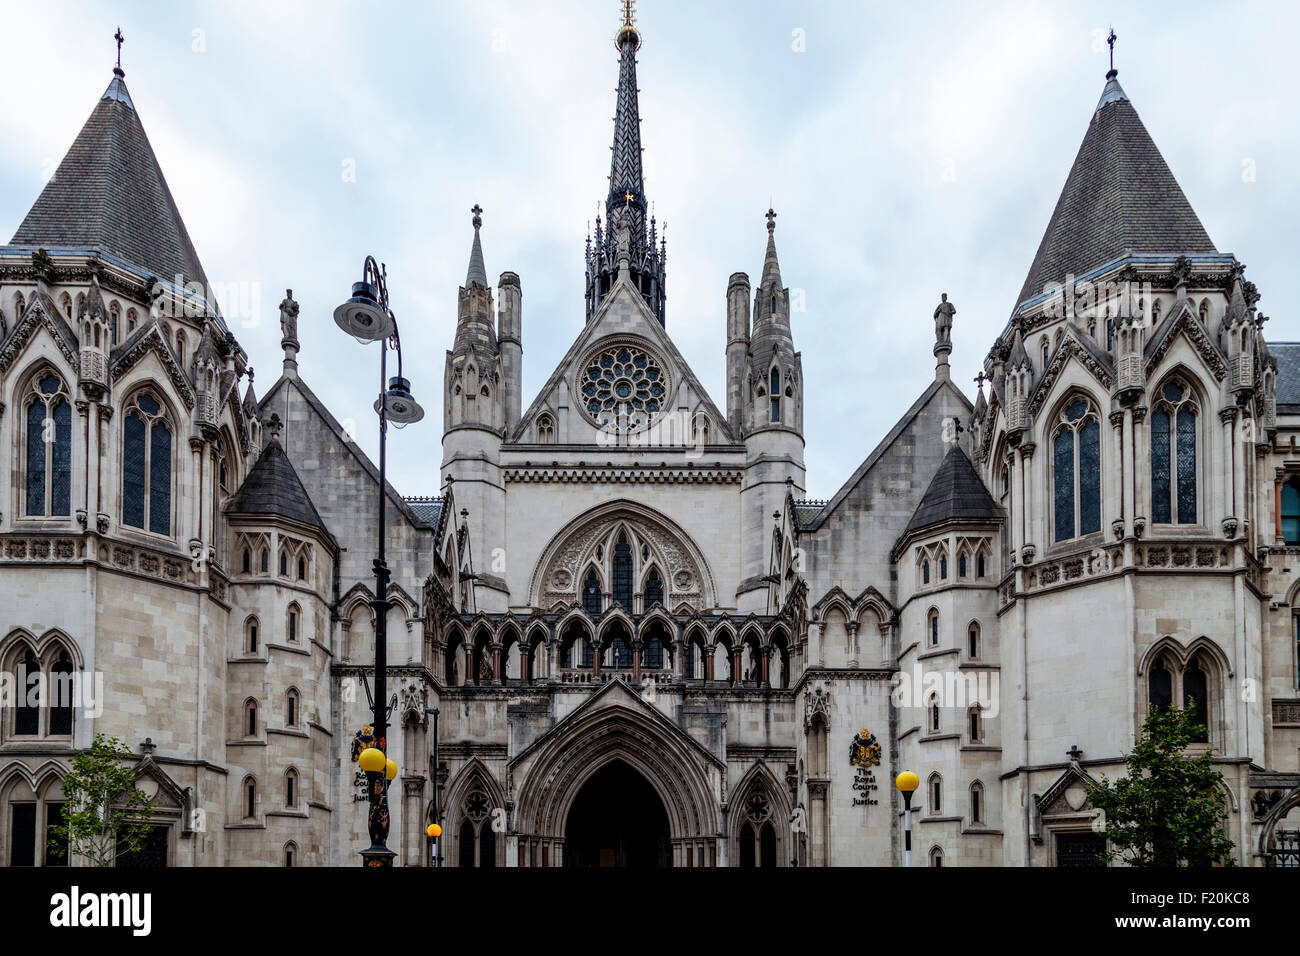 The Royal Courts Of Justice, London, England - Stock Image